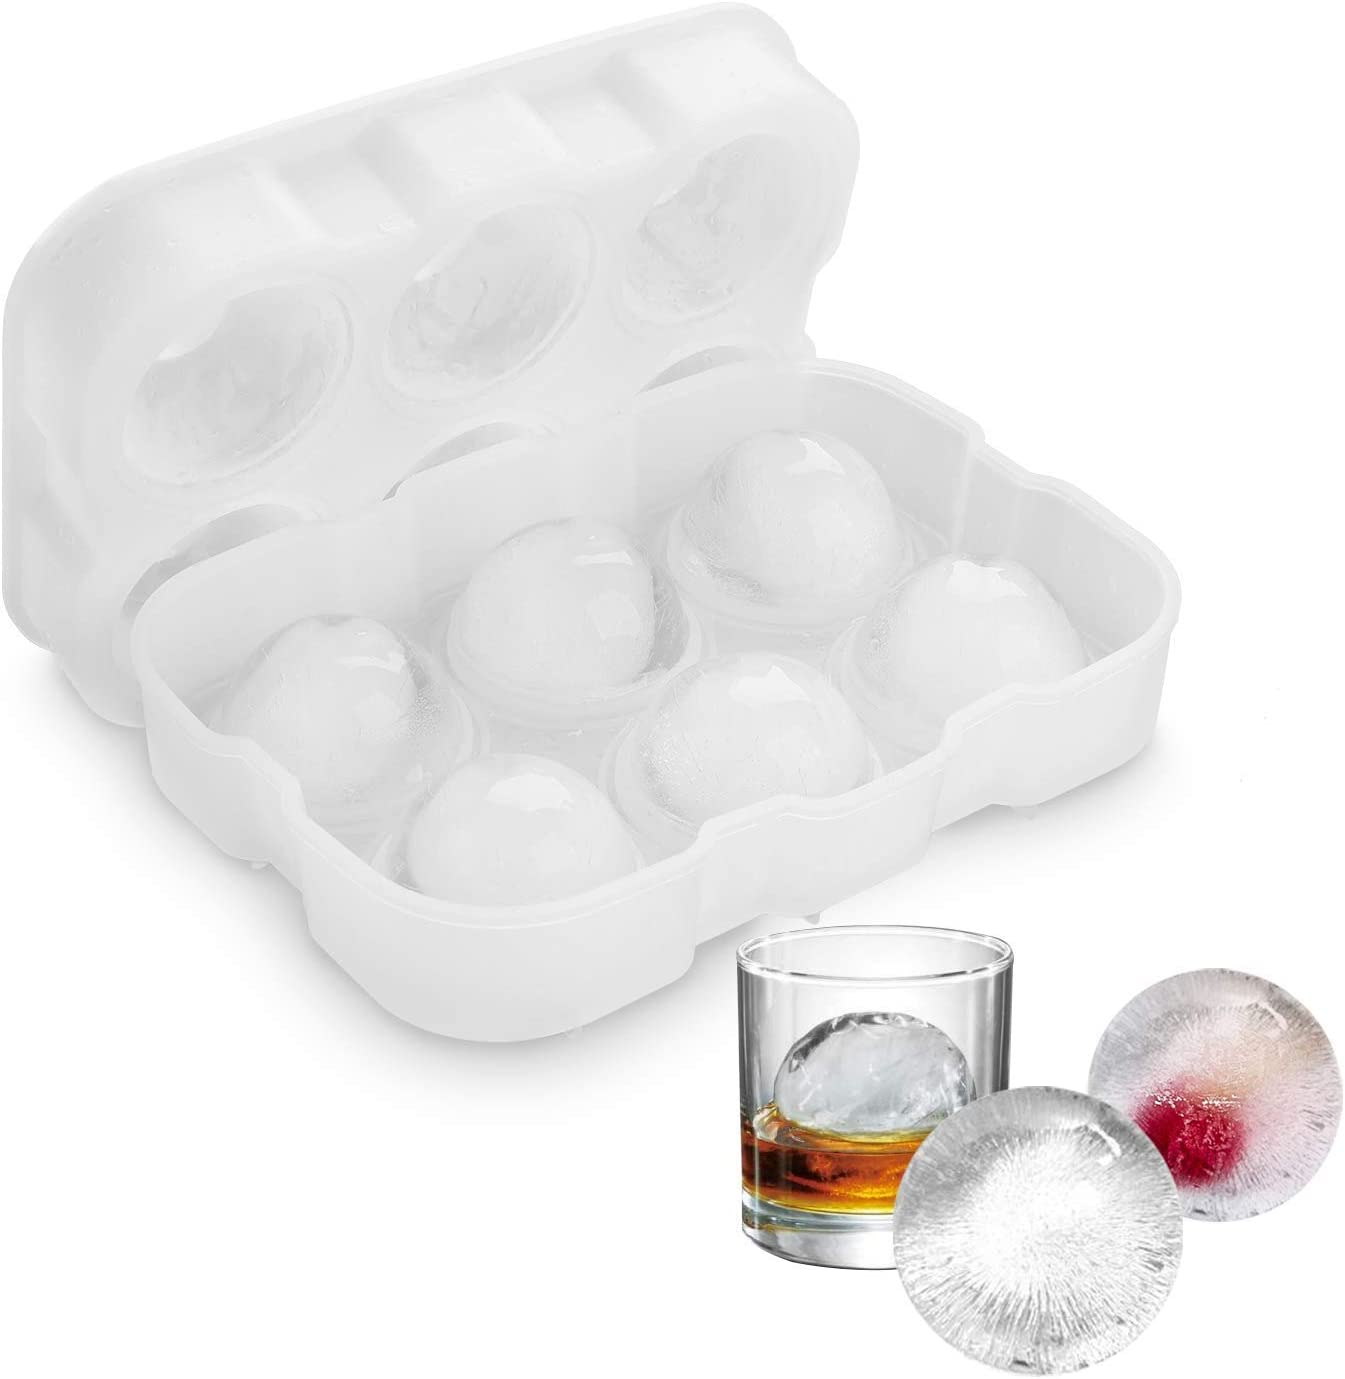 Ice Ball Maker Mold 8-Scotch Ice Balls Silicone Sphere Ice Trays